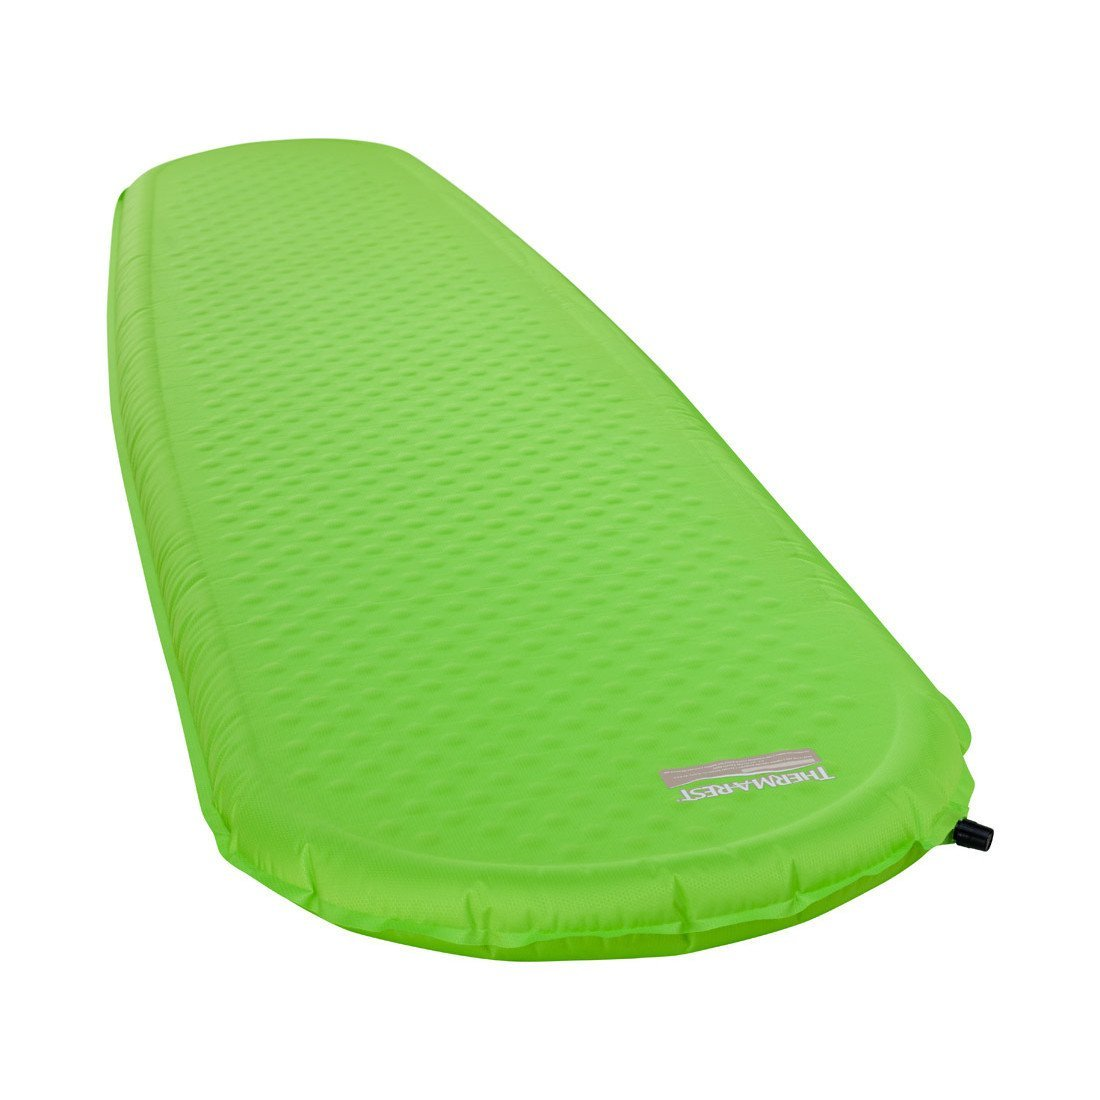 Thermarest Trail Pro Regular Wide camping mat, shown inflated and laid flat in green colour